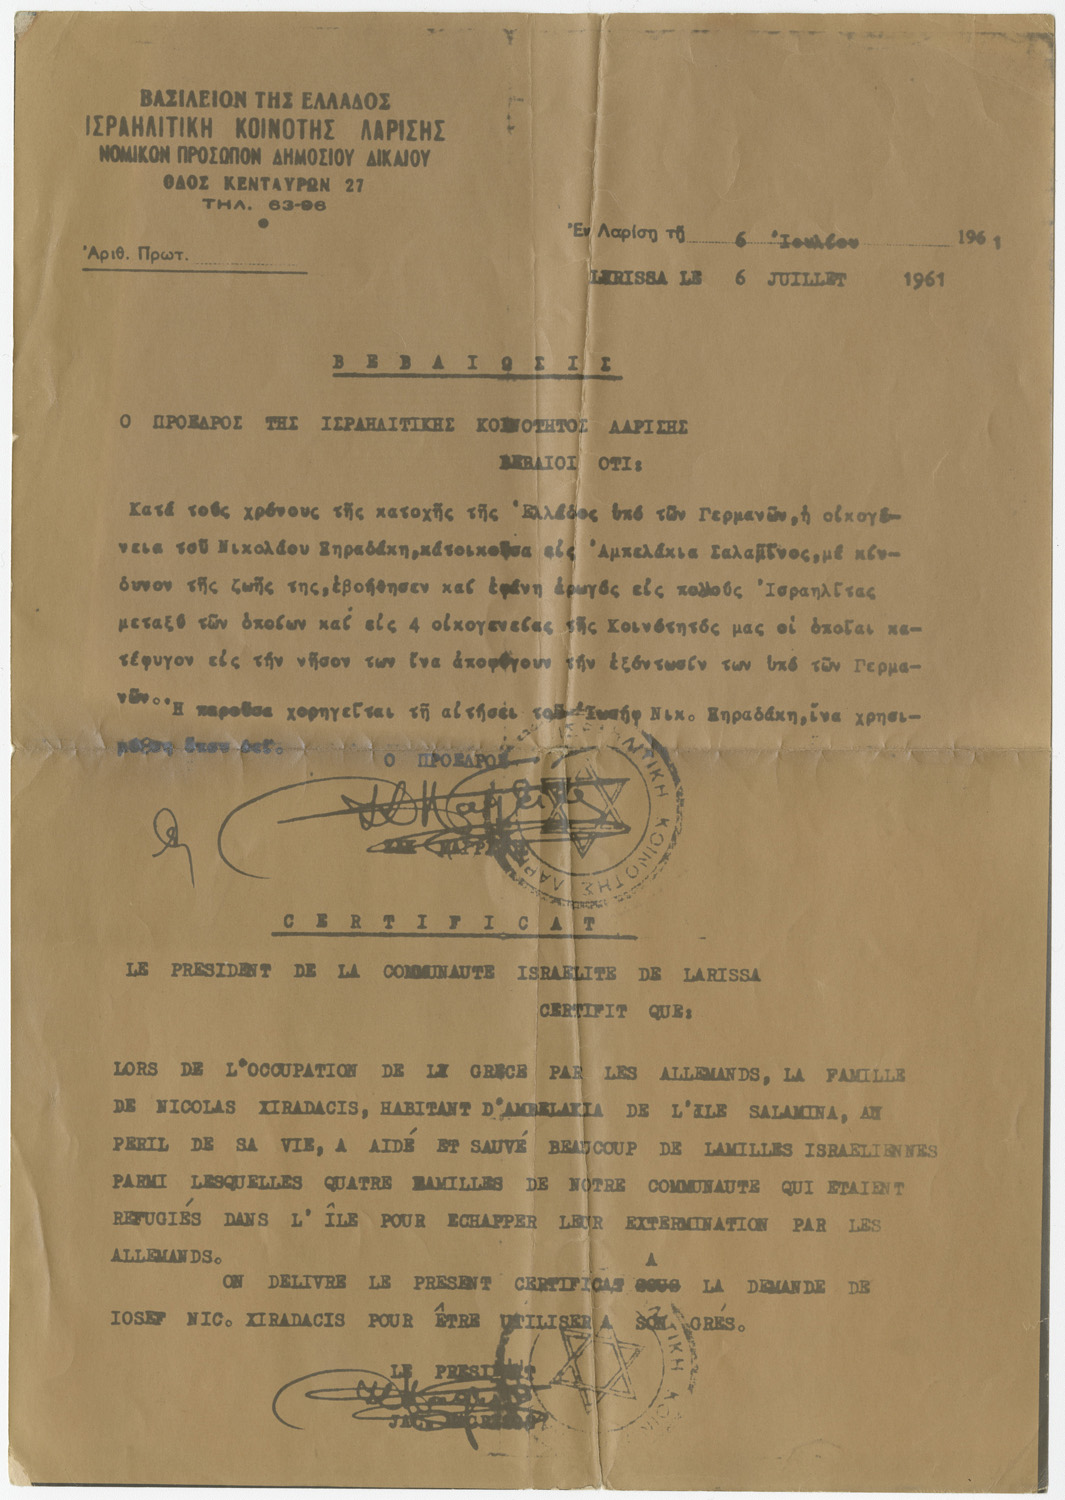 This certificate attests that Nicolas Xiradacis saved the lives of Jewish families during the Holocaust. It was delivered to Larissa on July 6, 1961.